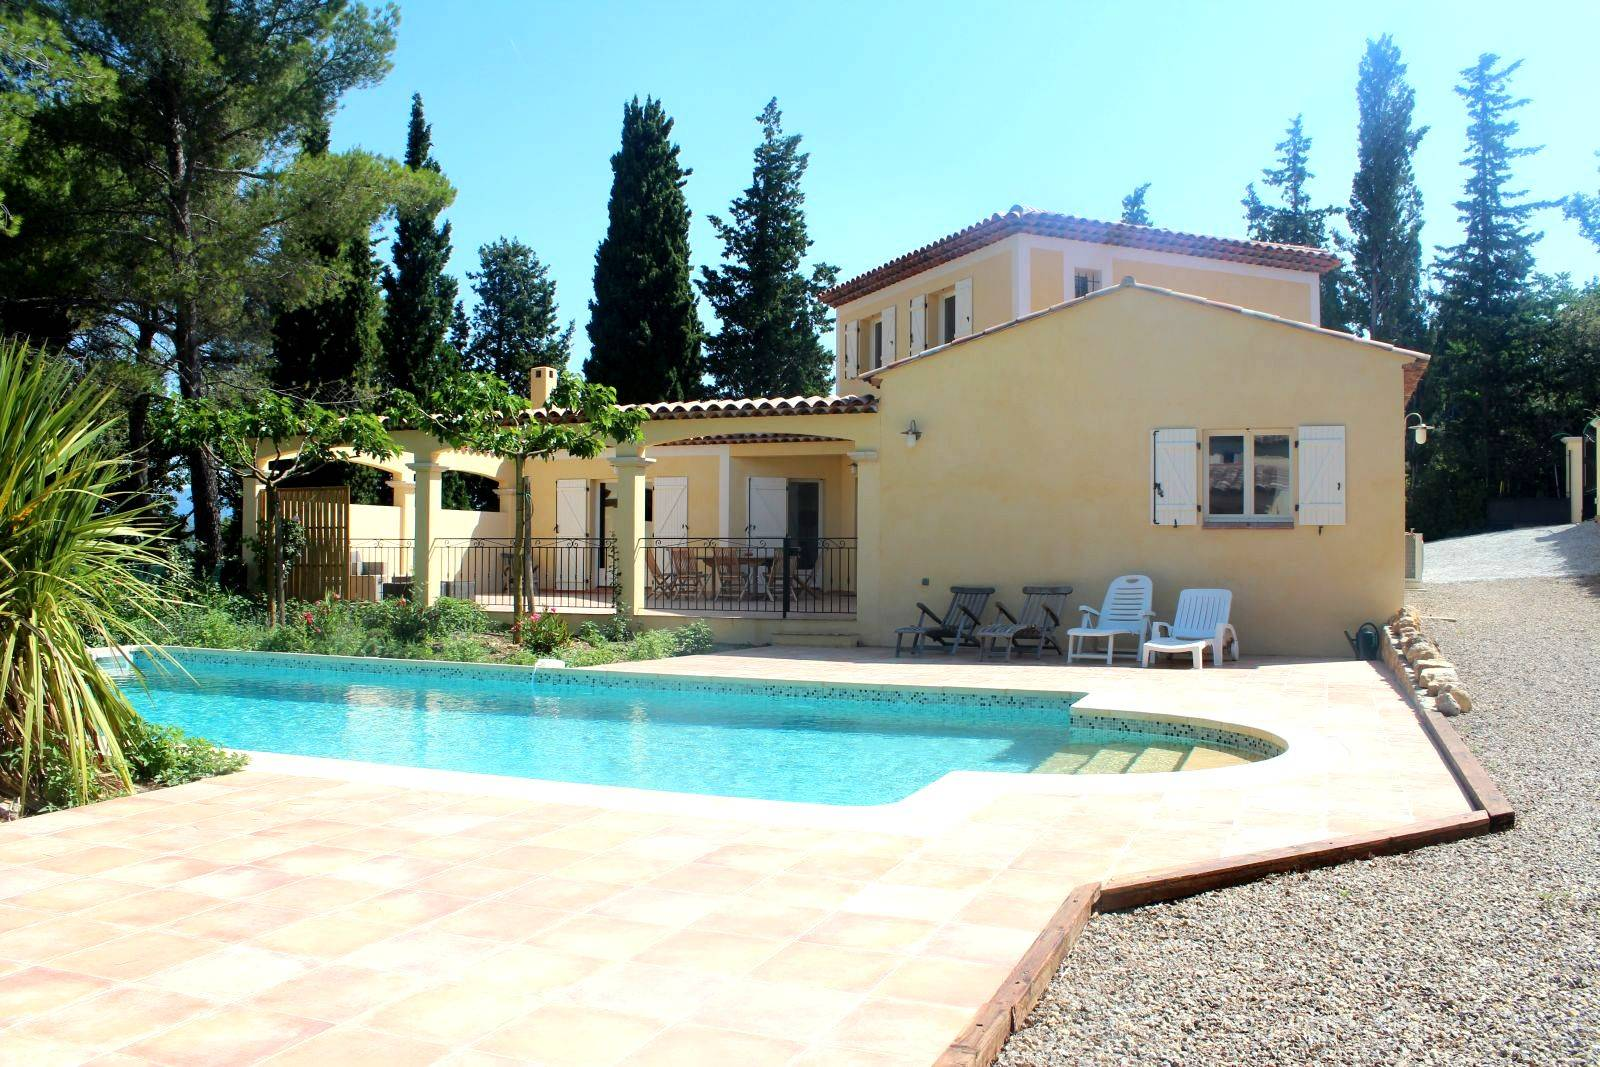 Immobilier flayosc villas et bastides la vente flayosc for Construction piscine 974